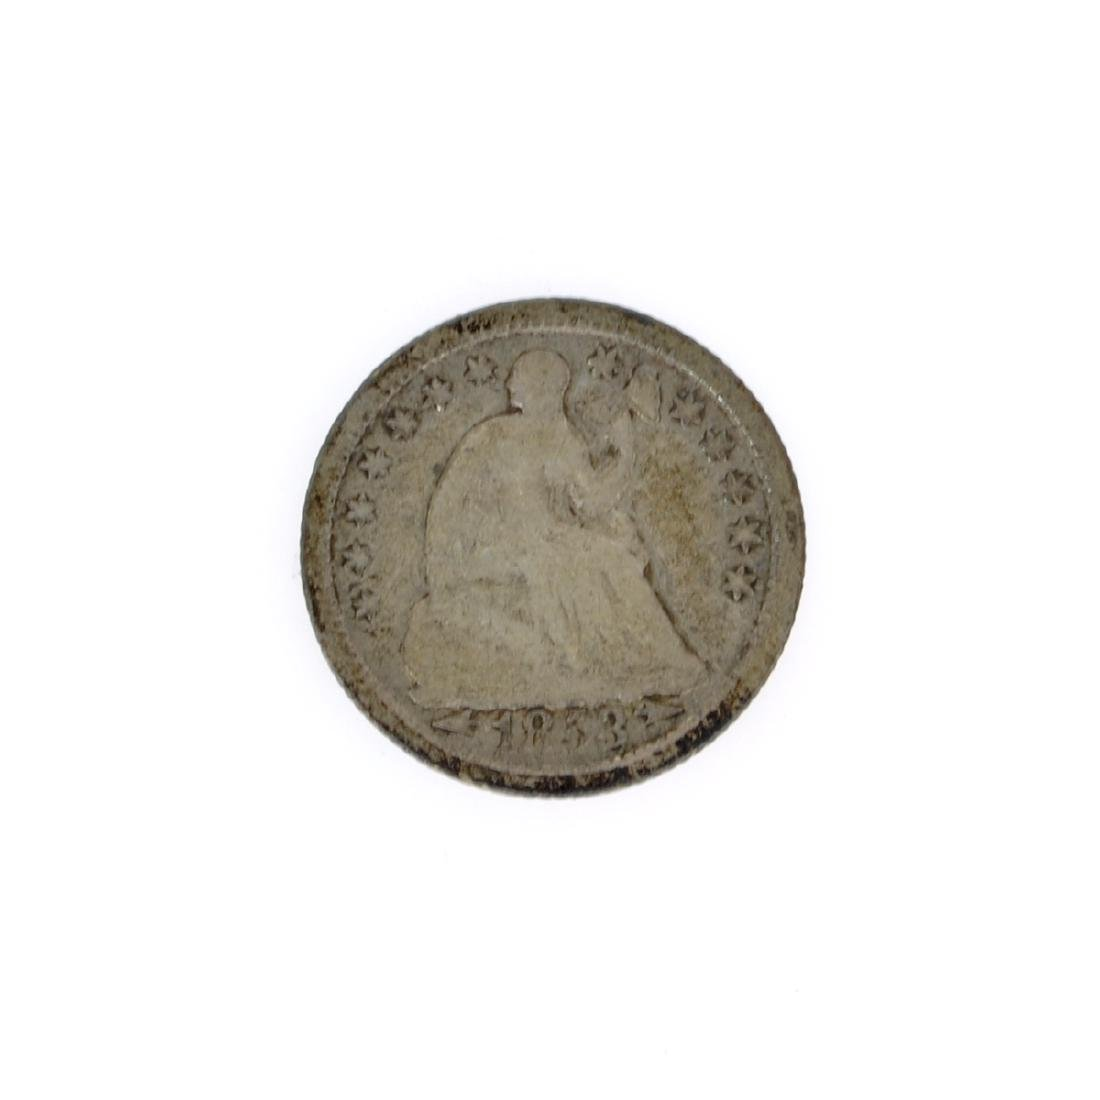 Rare 1853 Arrows At Date Liberty Seated Half Dime Coin